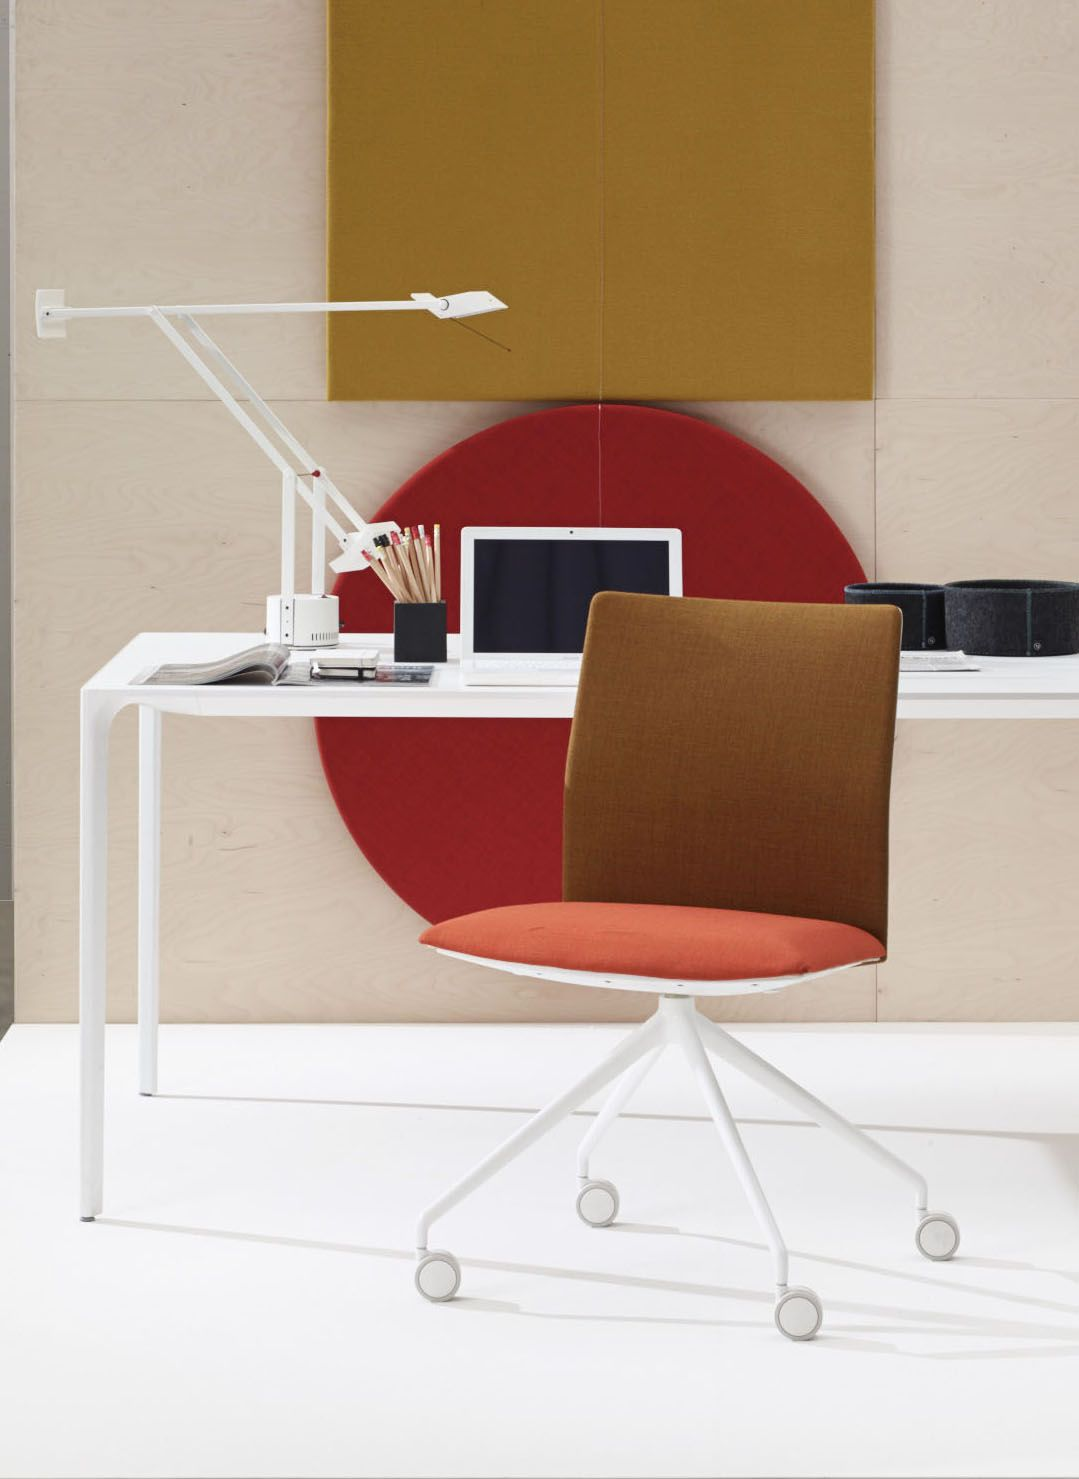 furniture for office space. Arper / Kinesit Chair With Bicolor Upholstery By Lievore Altherr Molina Furniture For Office Space